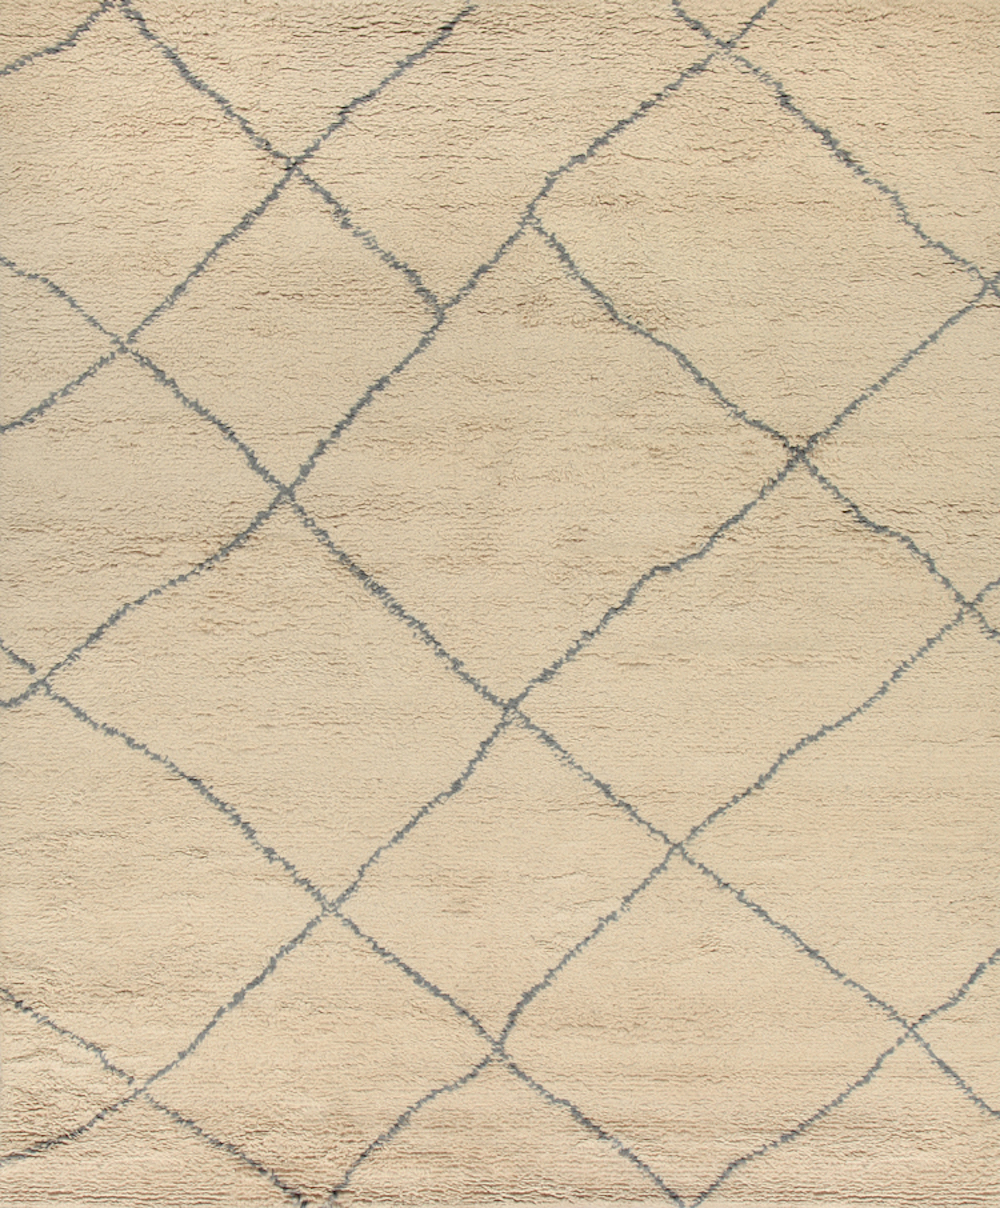 Moroccan Ivory Pewter 20200 8.2x9.8